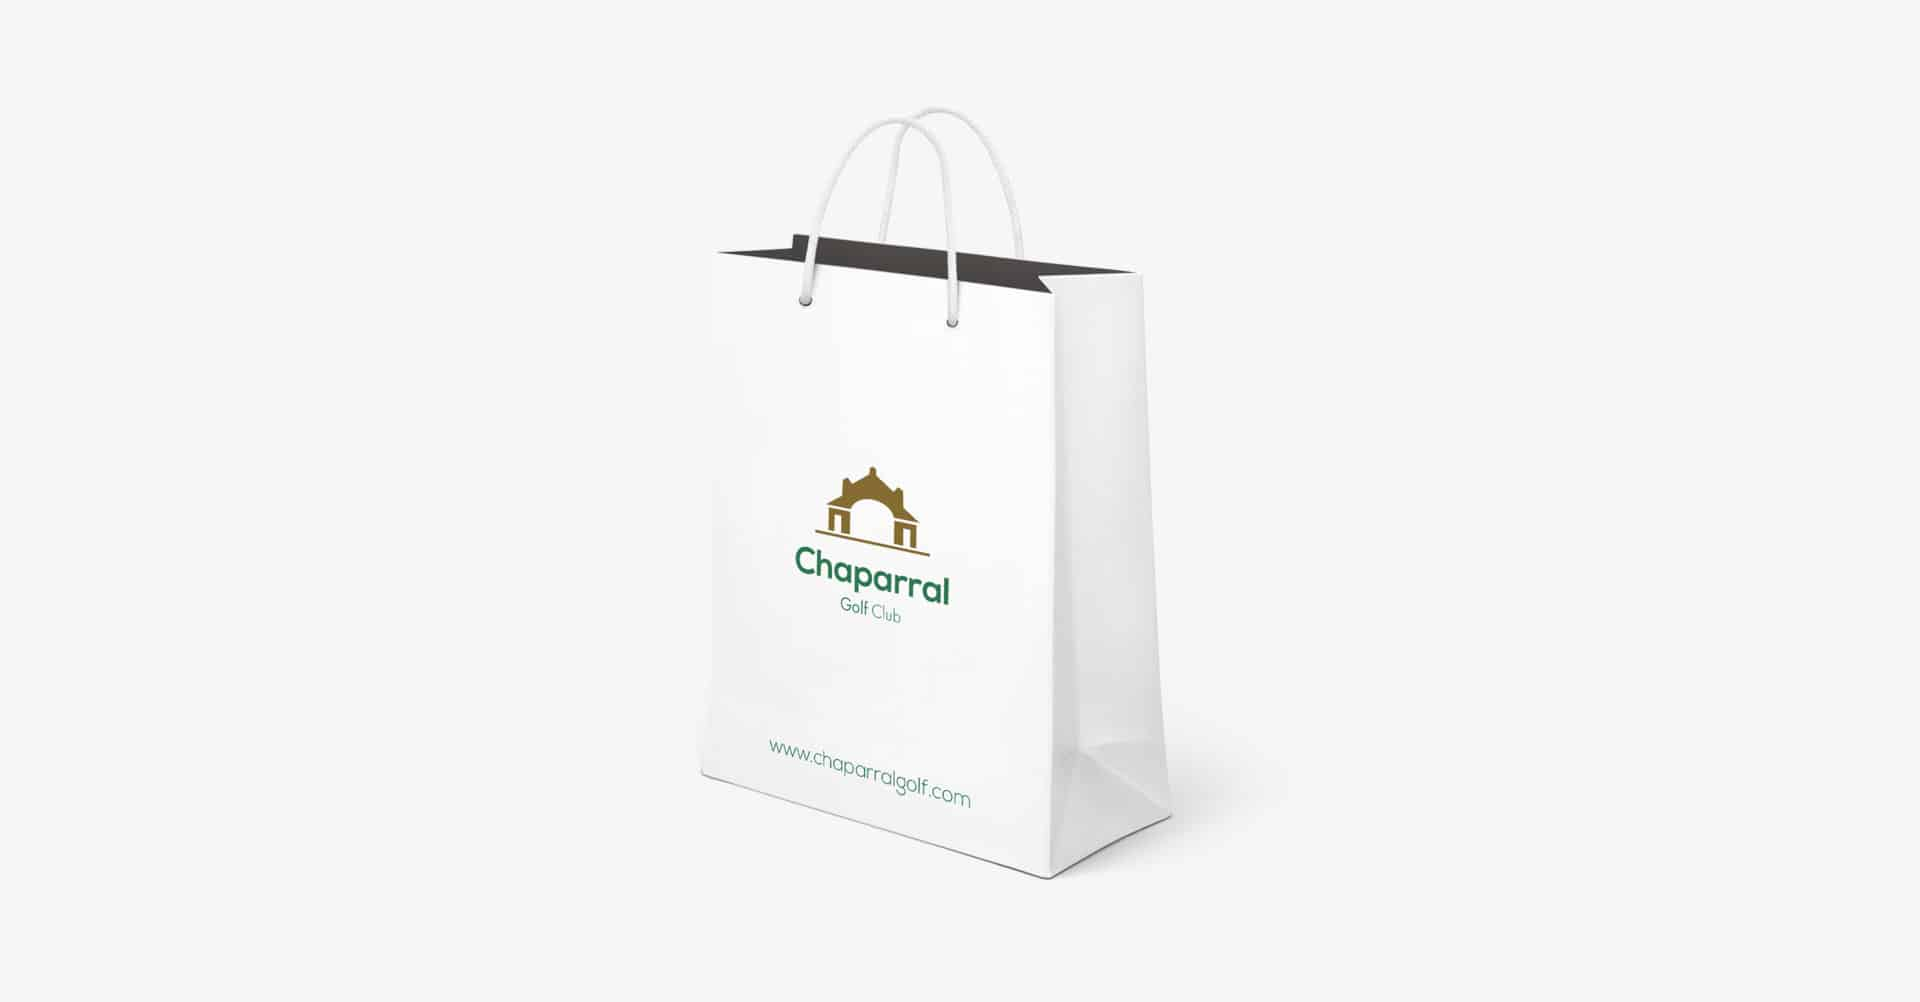 Chaparral Golf Club | Packaging